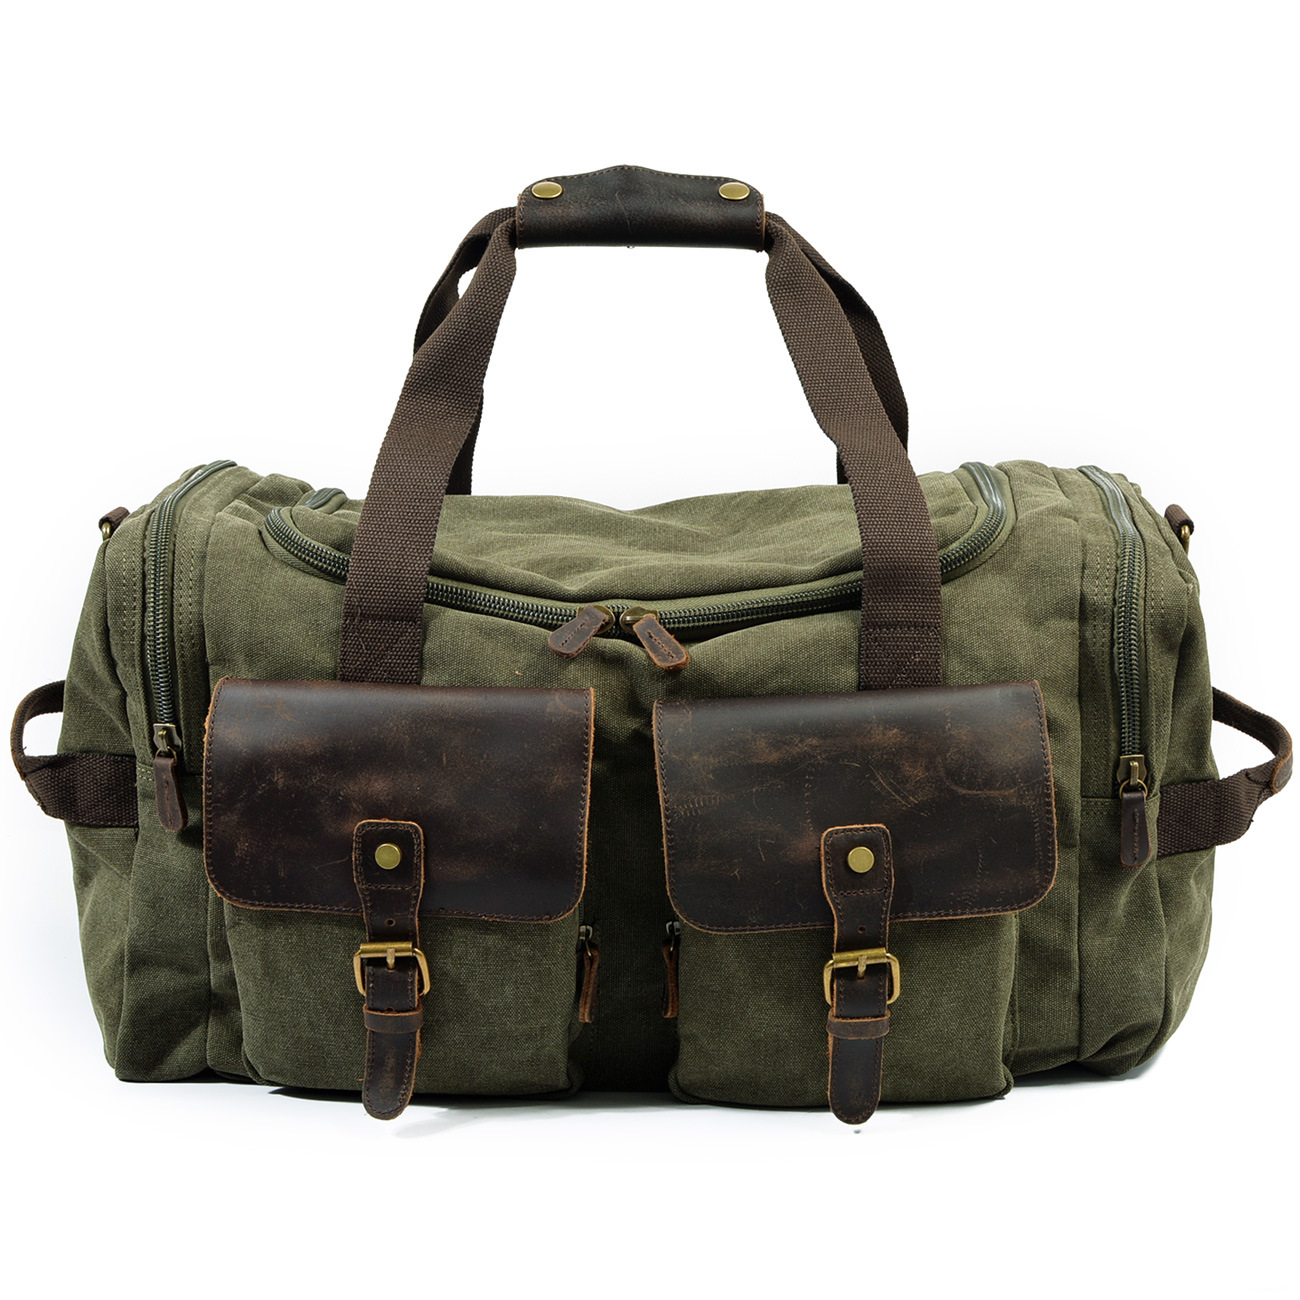 Man Vintage Military Travel Duffel Bag Multi pocket Canvas Overnight Bag  Leather Weekend Carry on Big Shoulder Bags Tote Luggage-in Travel Bags from  Luggage ... 6f7ada78c5168